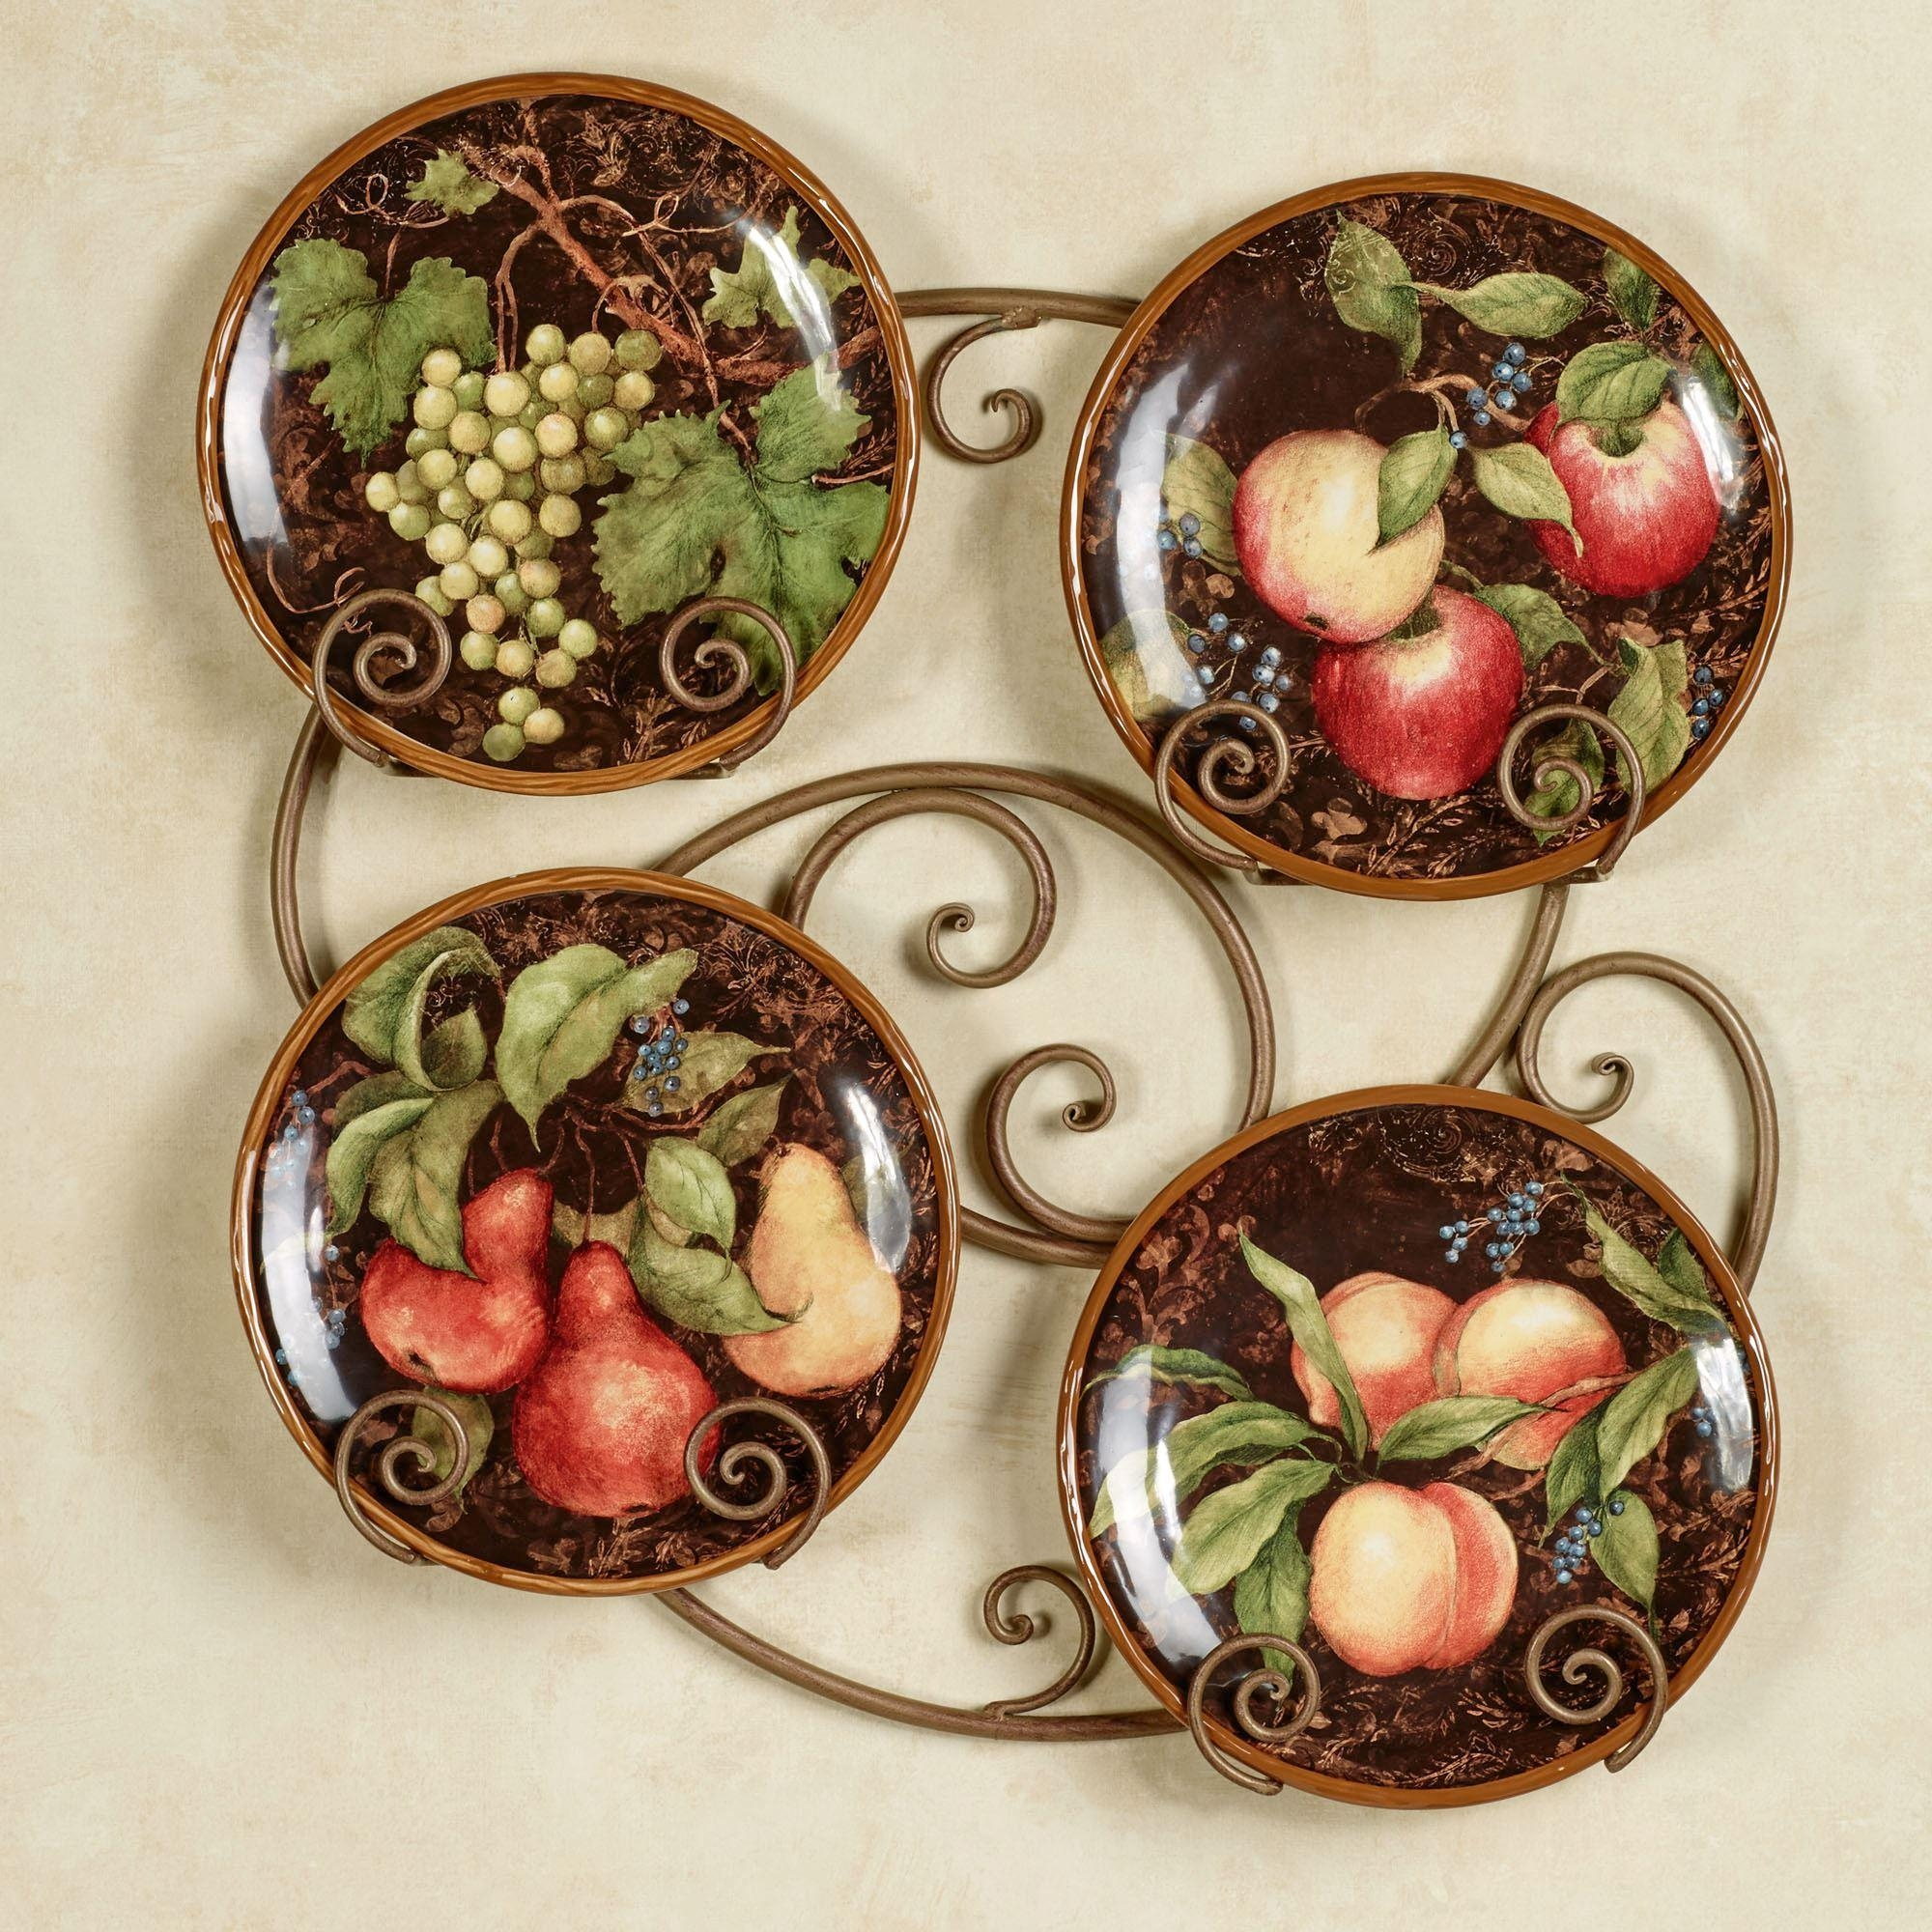 Tuscan And Italian Home Decor | Touch Of Class Within Italian Ceramic Wall Clock Decors (Image 15 of 20)